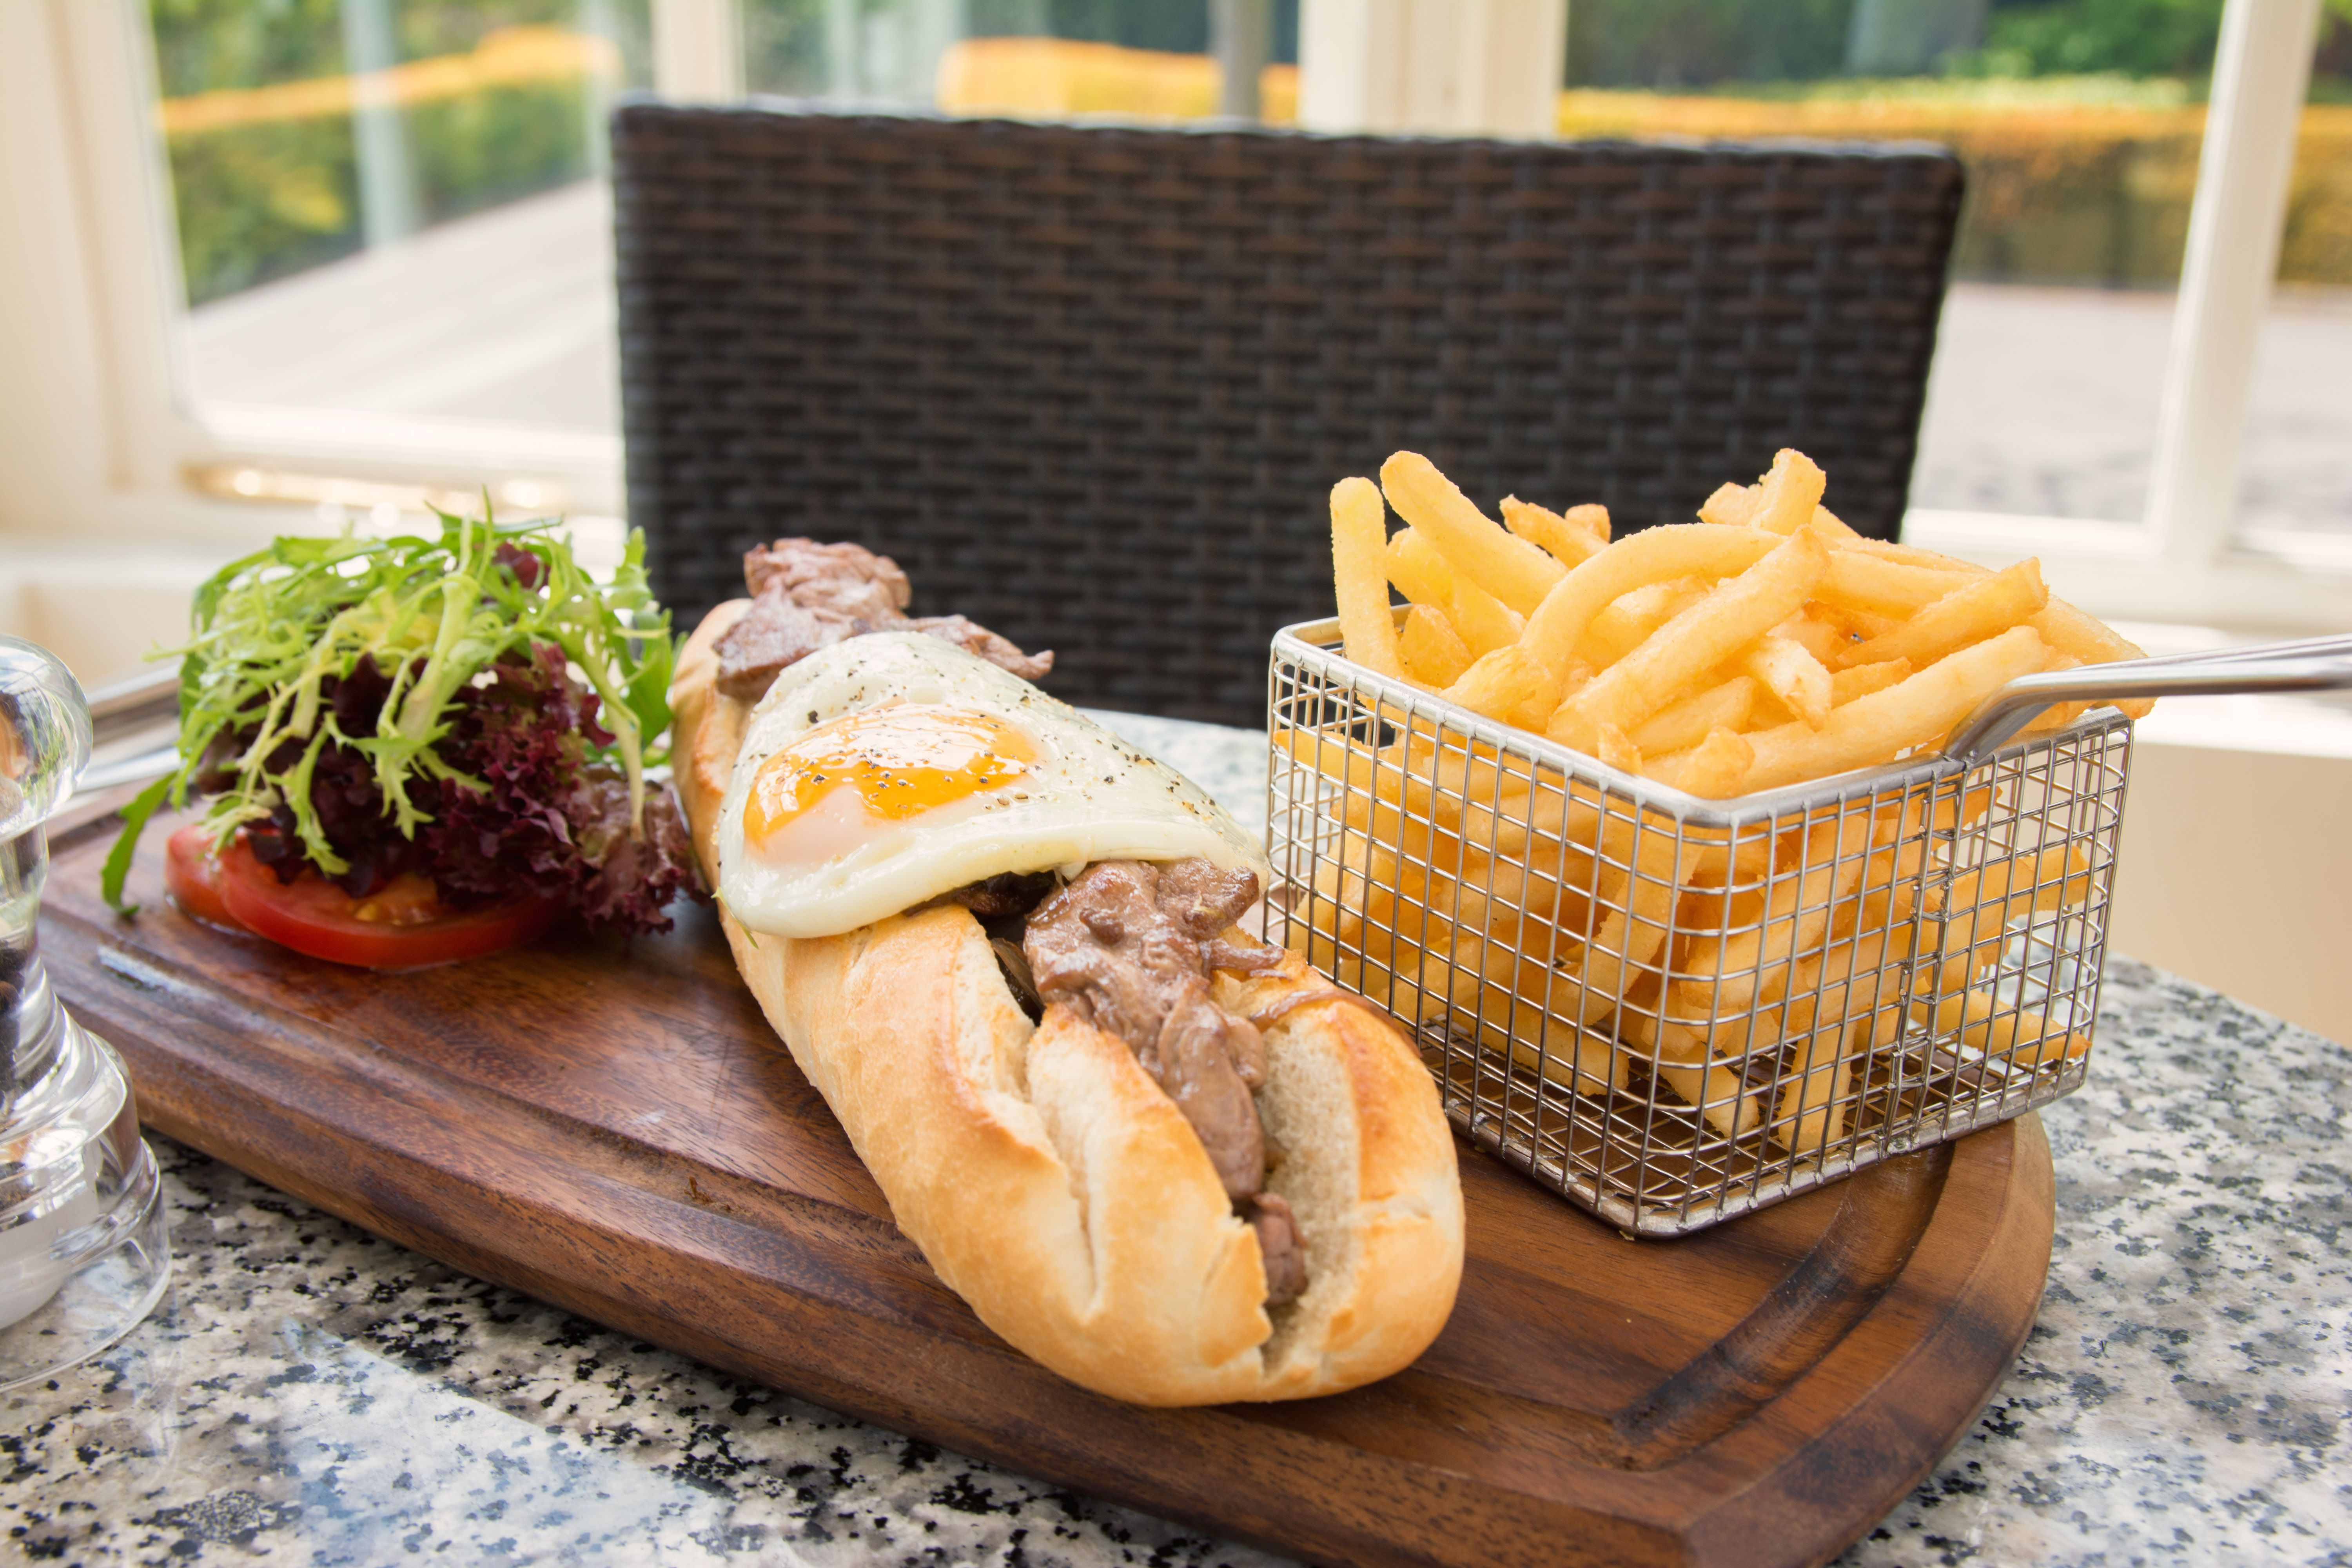 Bookmakers' Baguette - Seared Fillet of Beef with Caramelised Red Onion  Served with Fries and a Free Range Fried Egg  lunch idea. lunch time treat. Bar food. Bar meal.